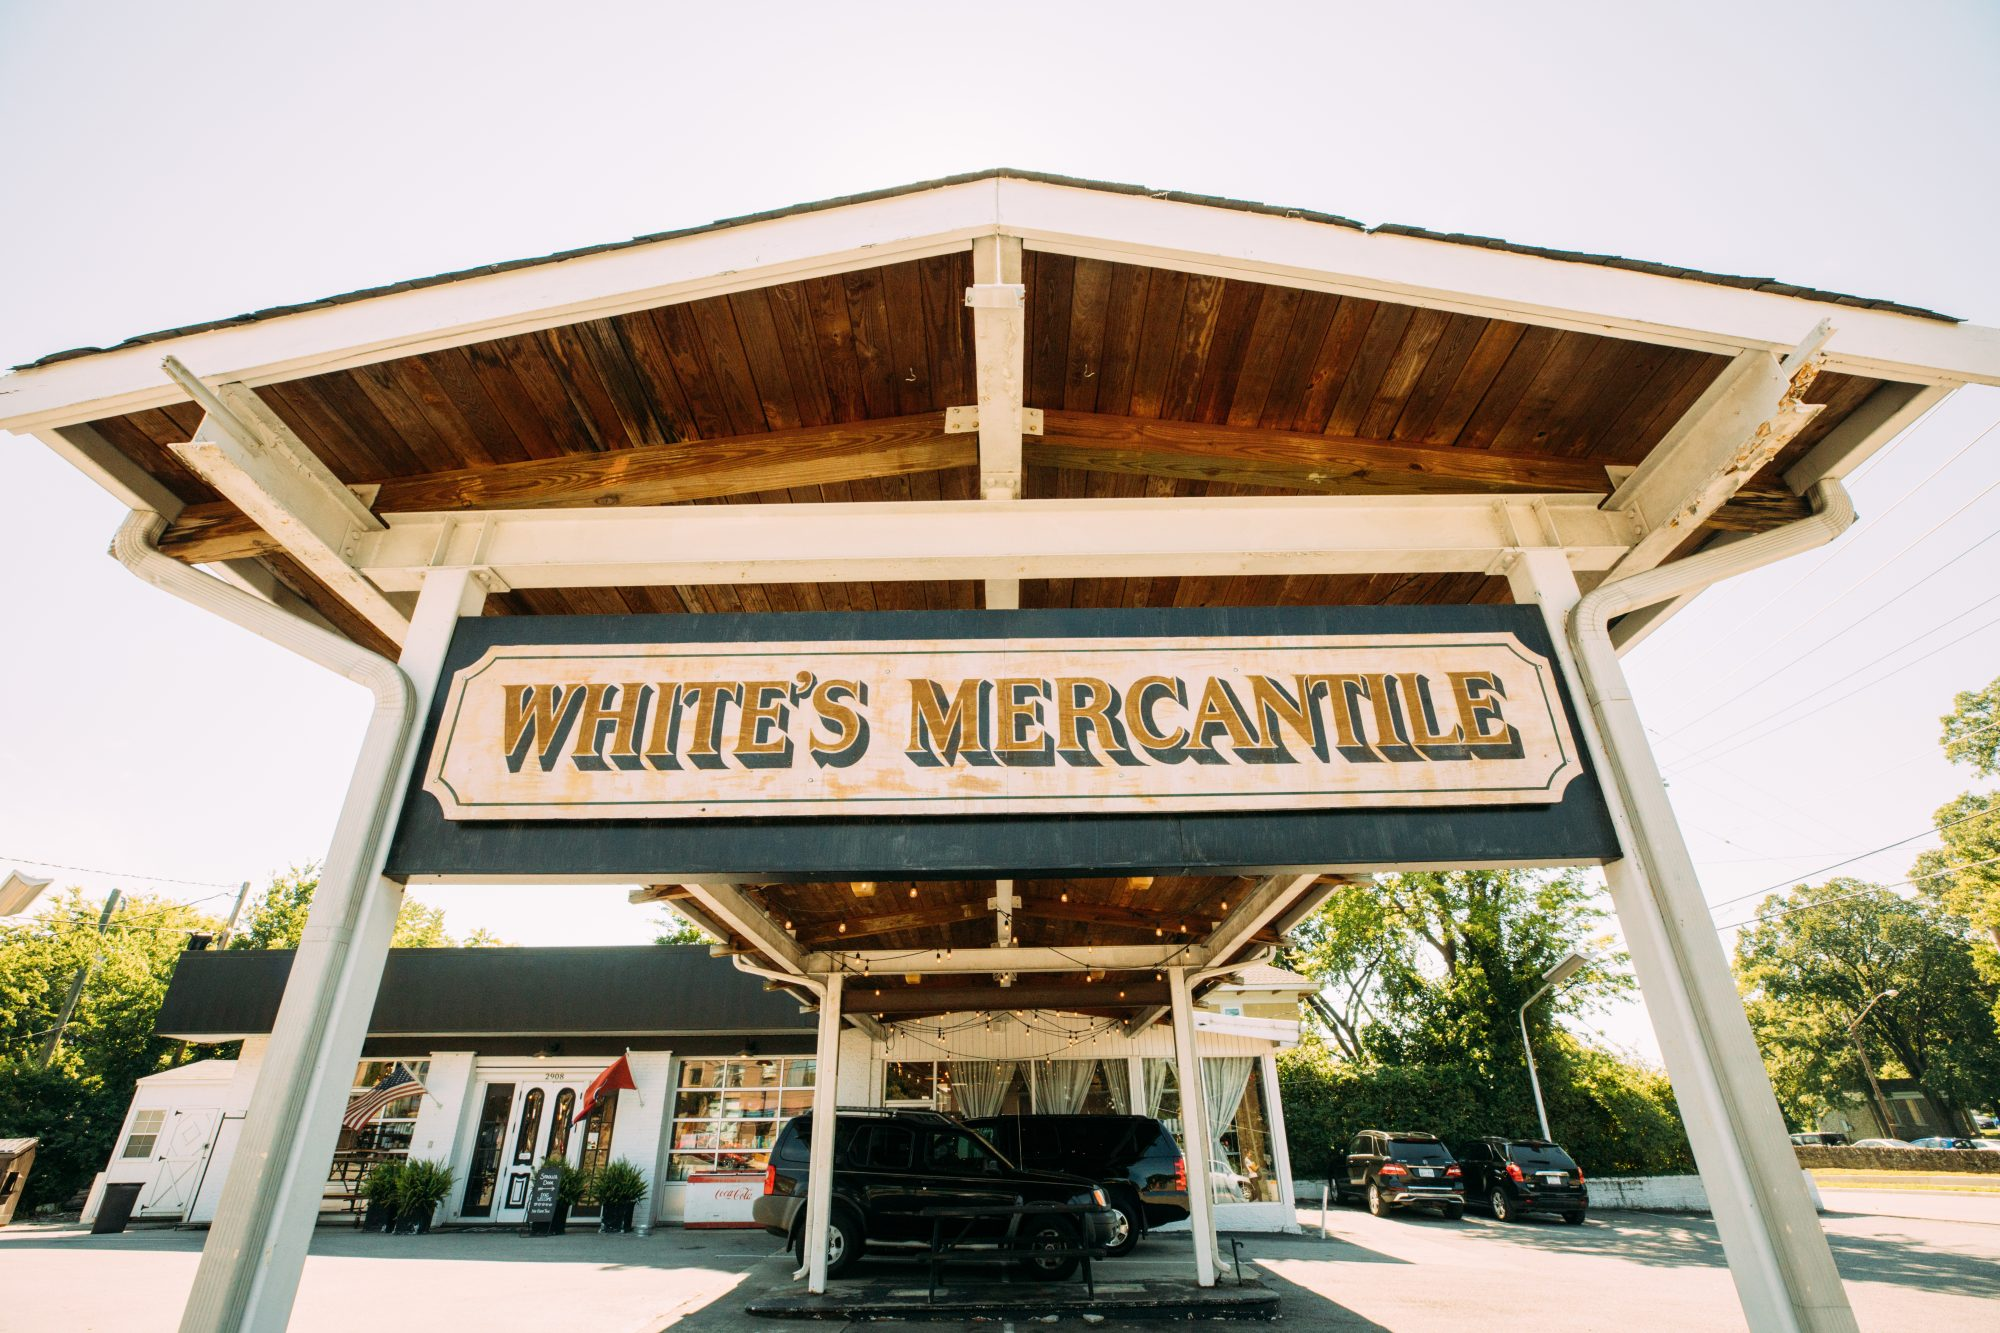 4. White's Mercantile (Nashville, Tennessee)